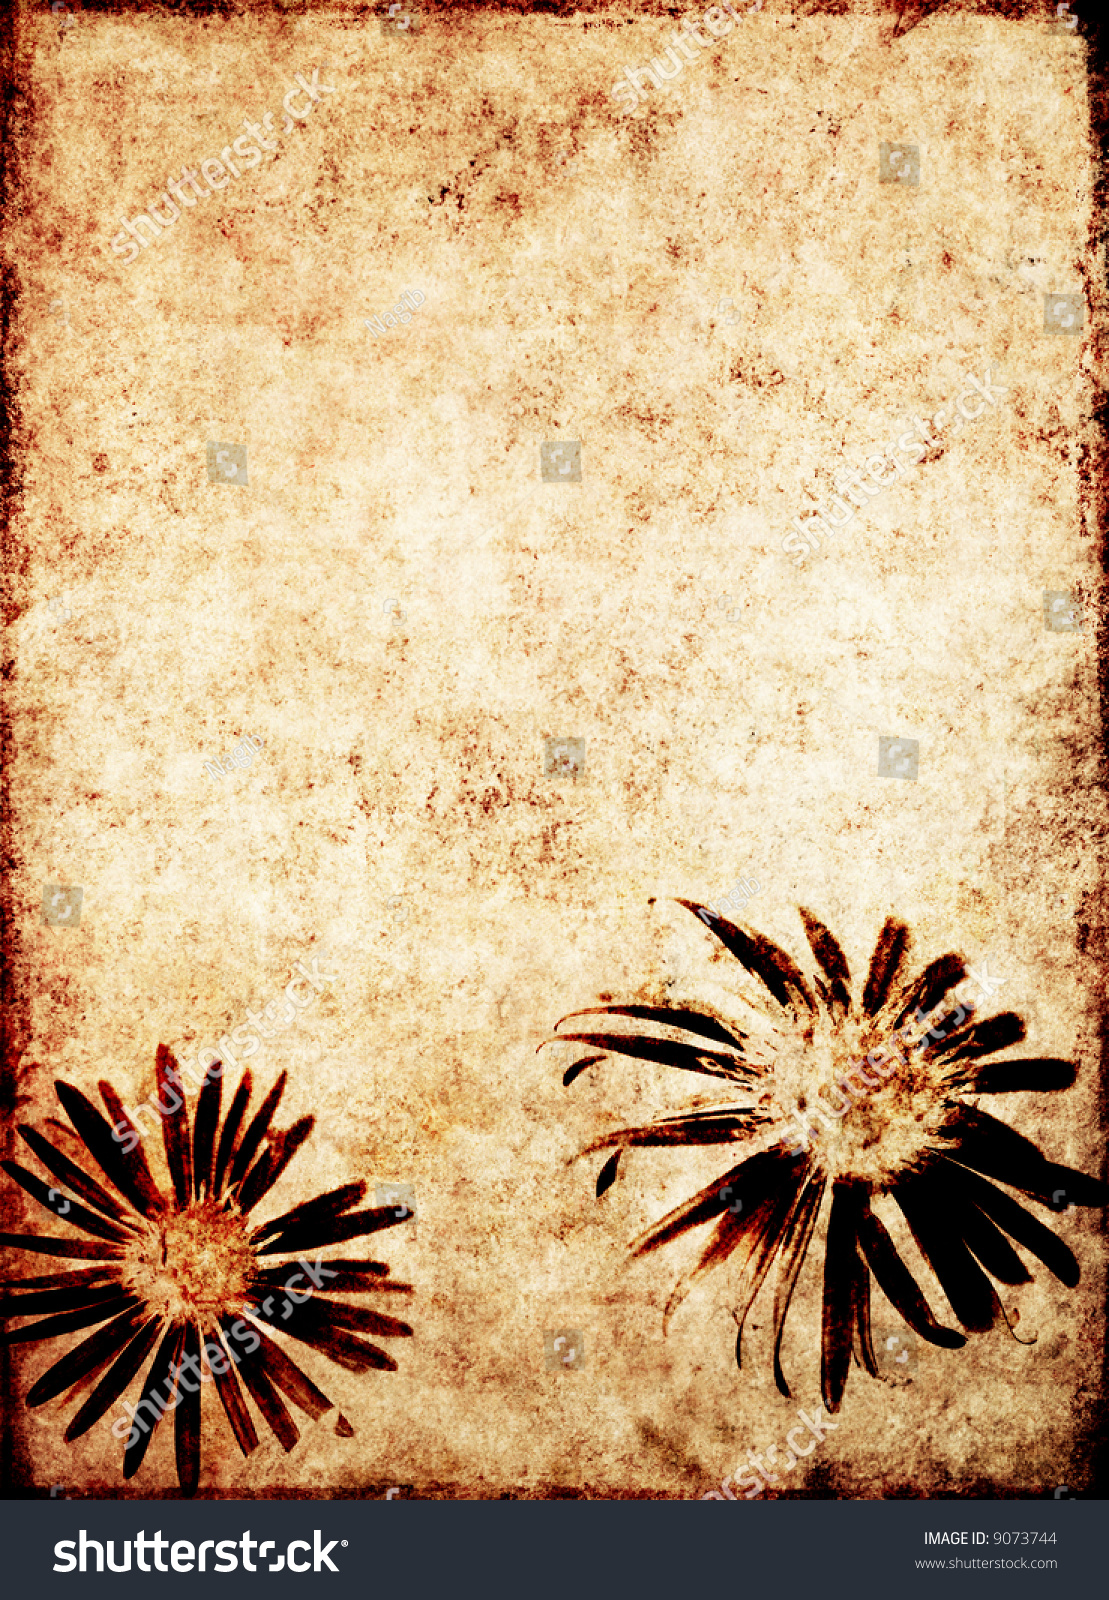 Pretty Brown Background Image With Interesting Texture ... - photo#33